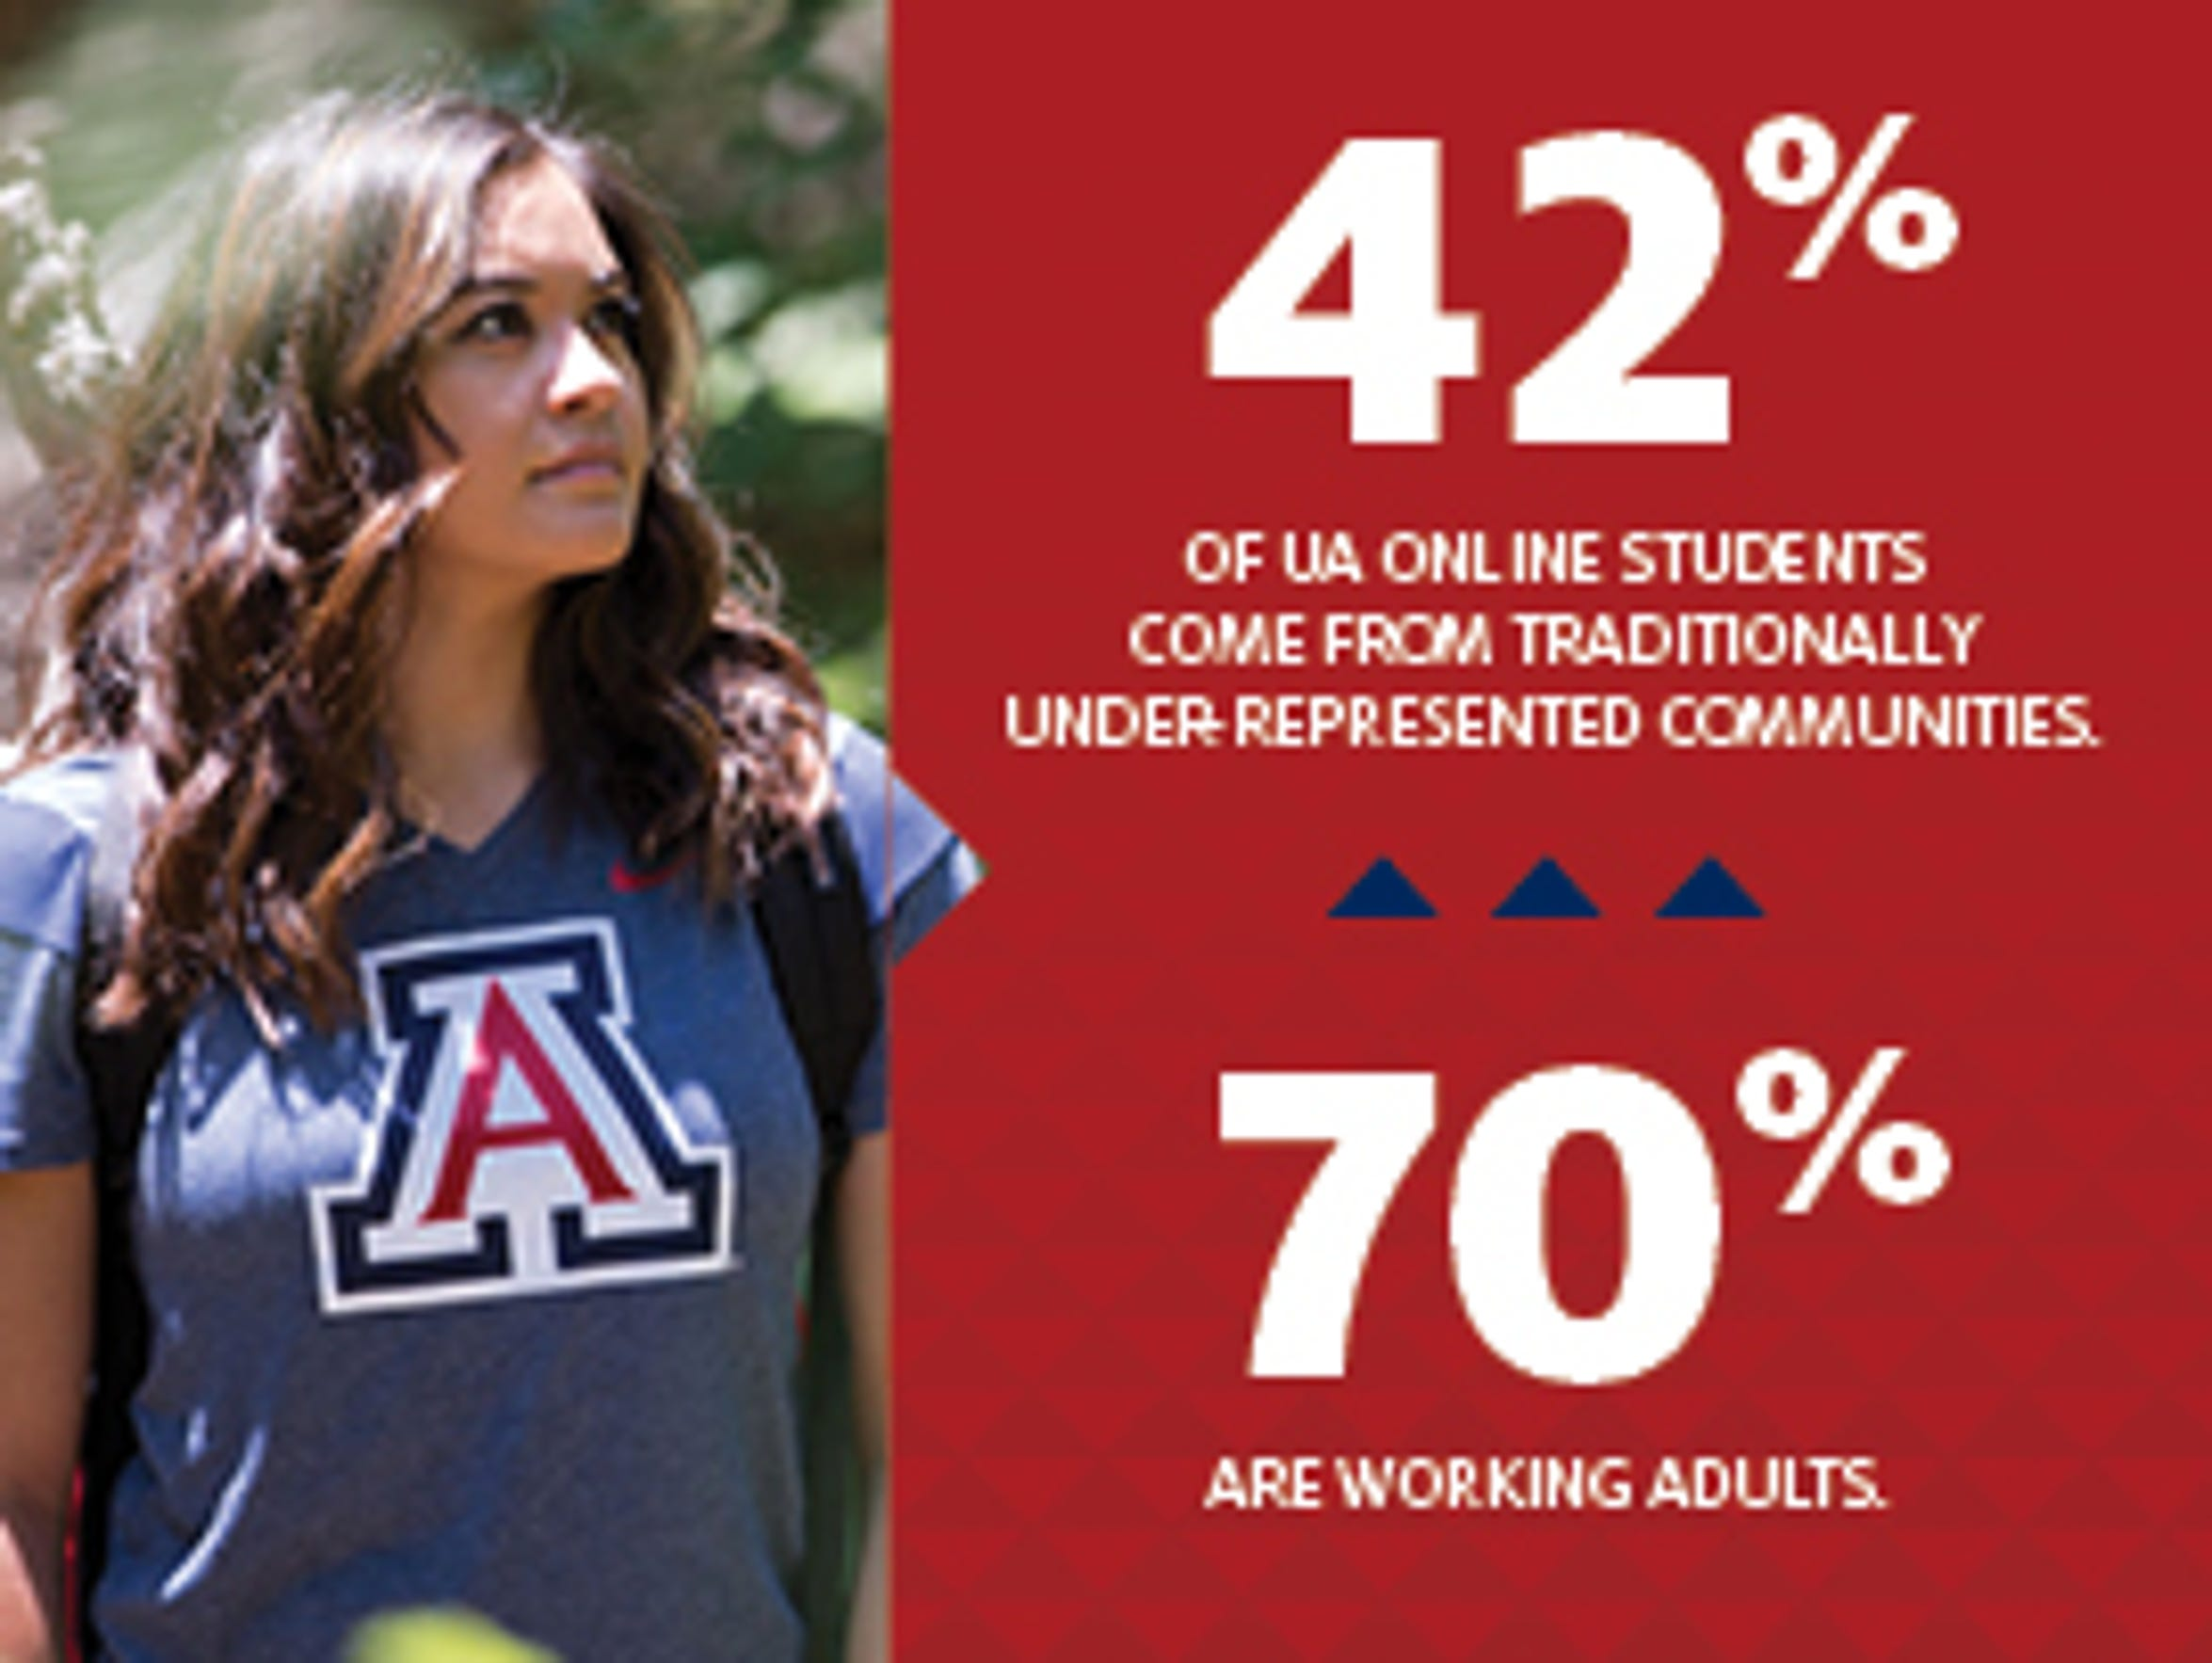 Today, UA Online serves students from 46 states.